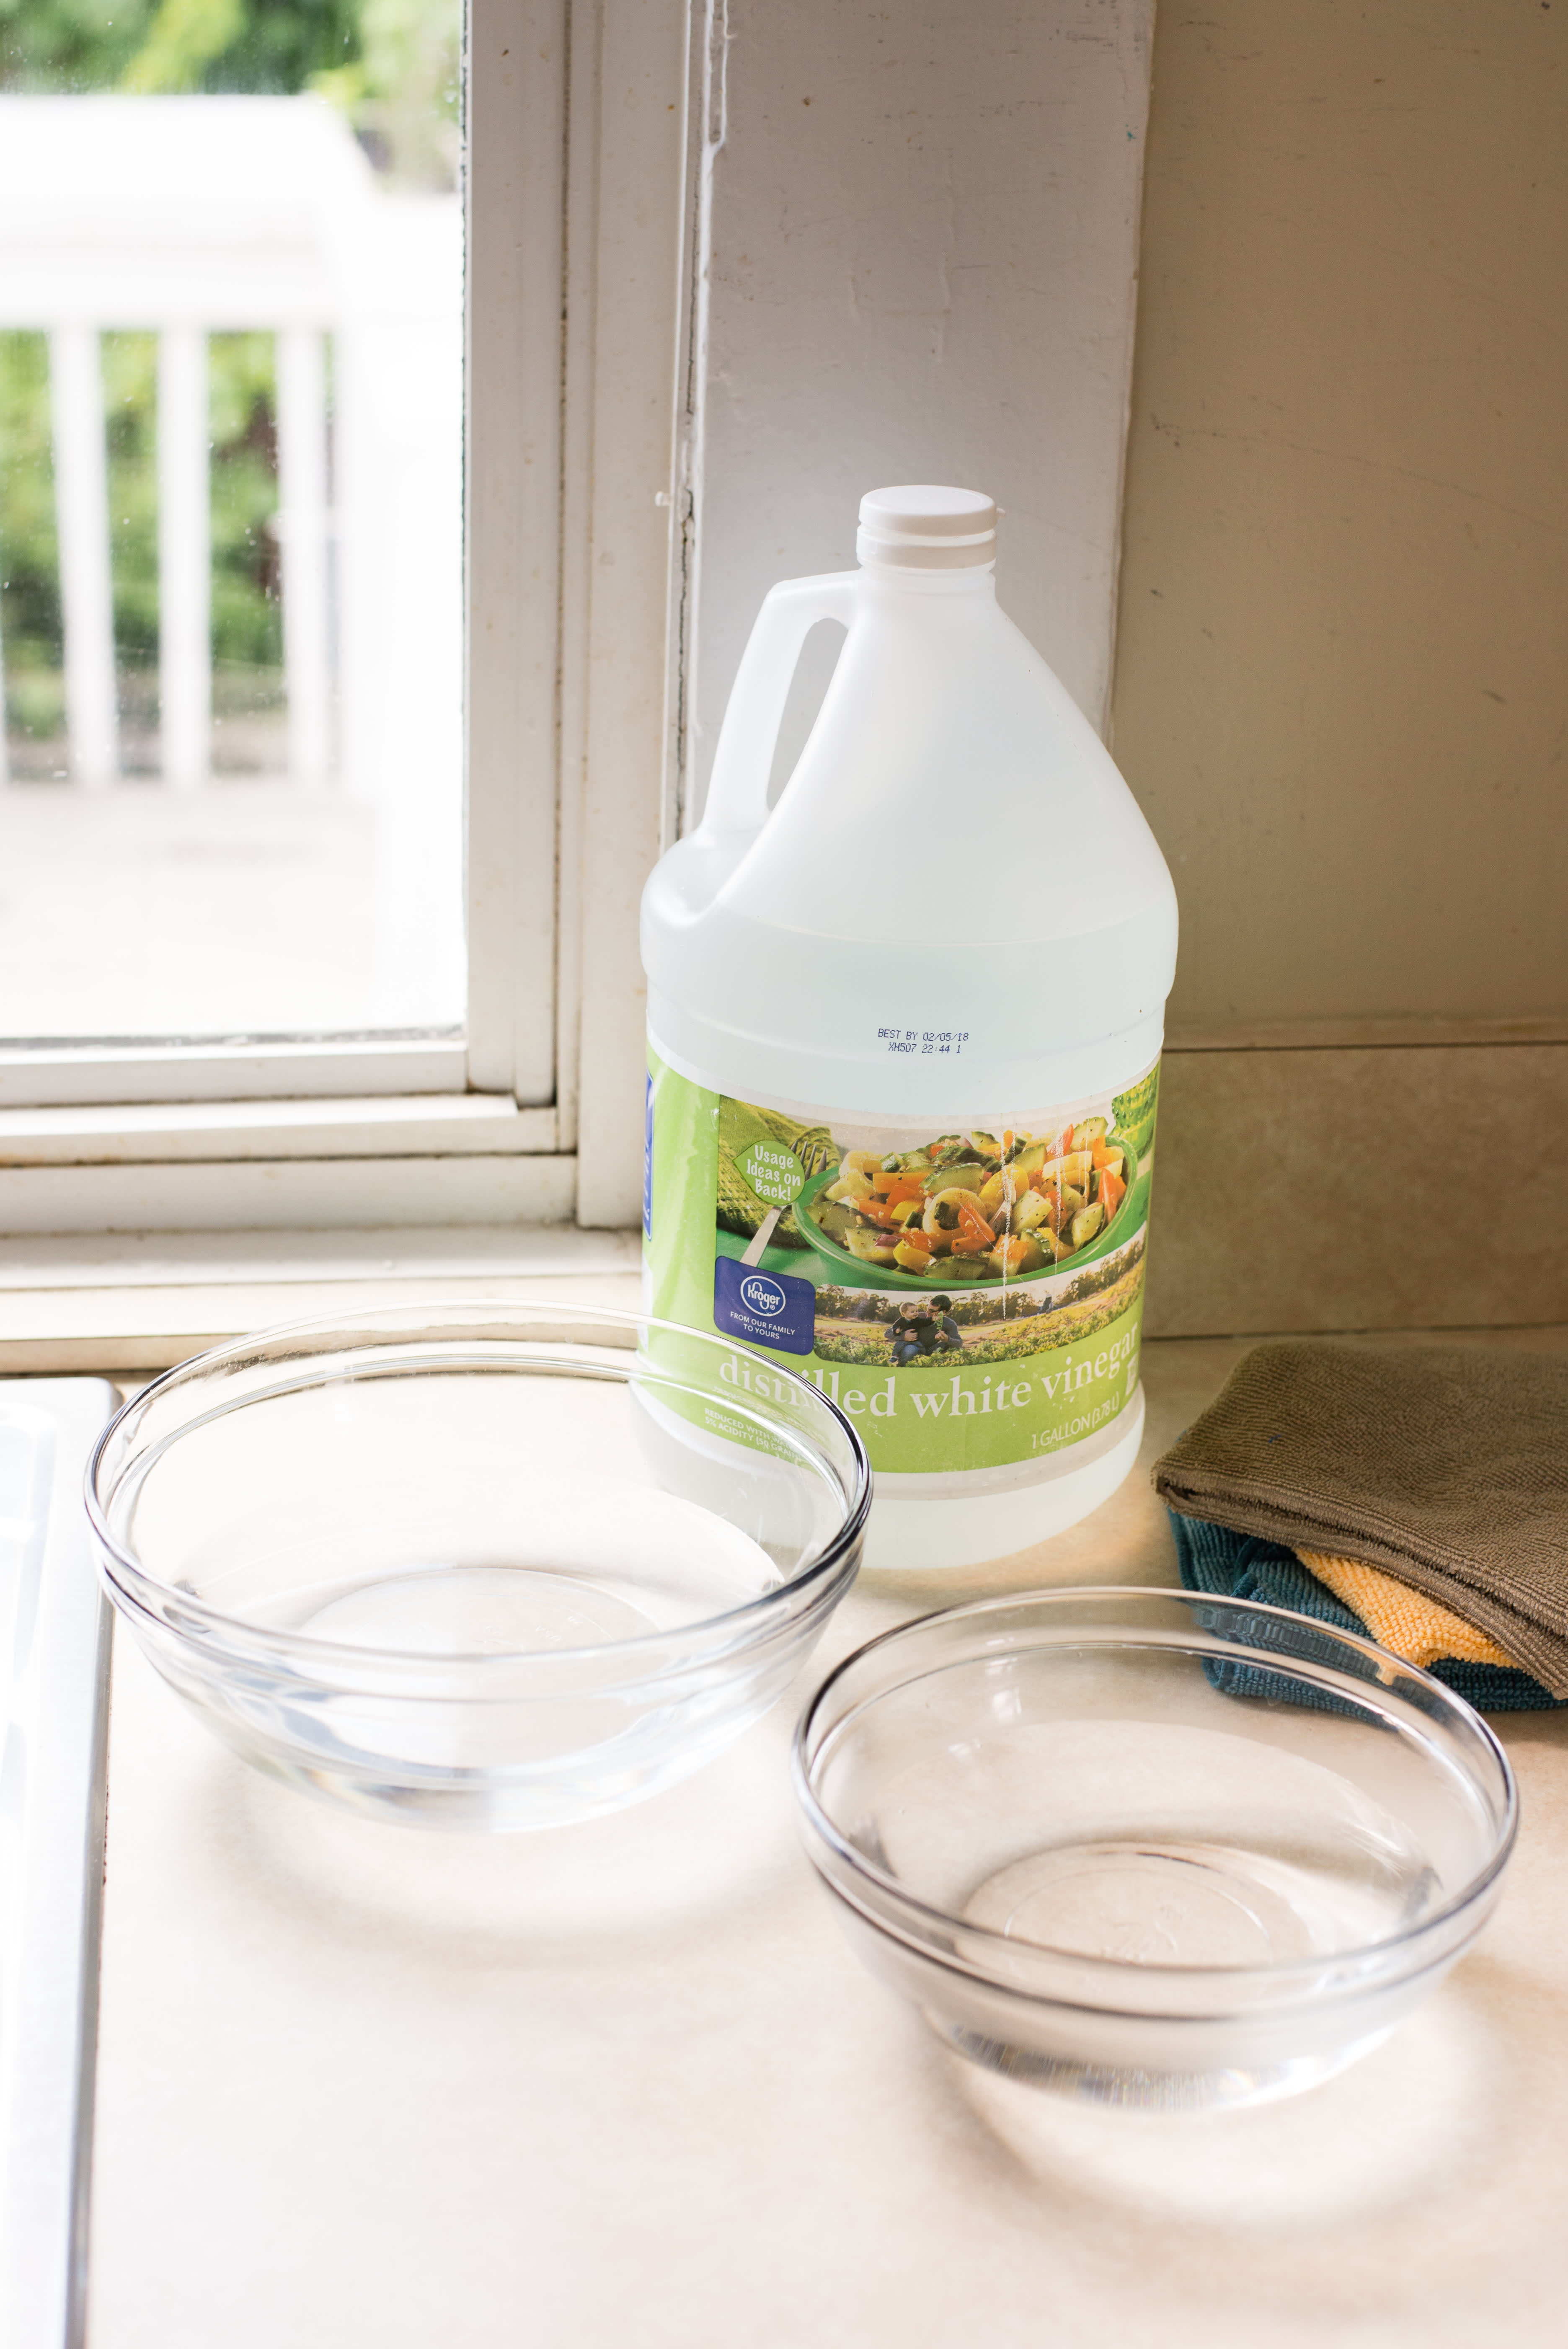 How To Clean Your Kitchen Sink Sprayer: gallery image 1